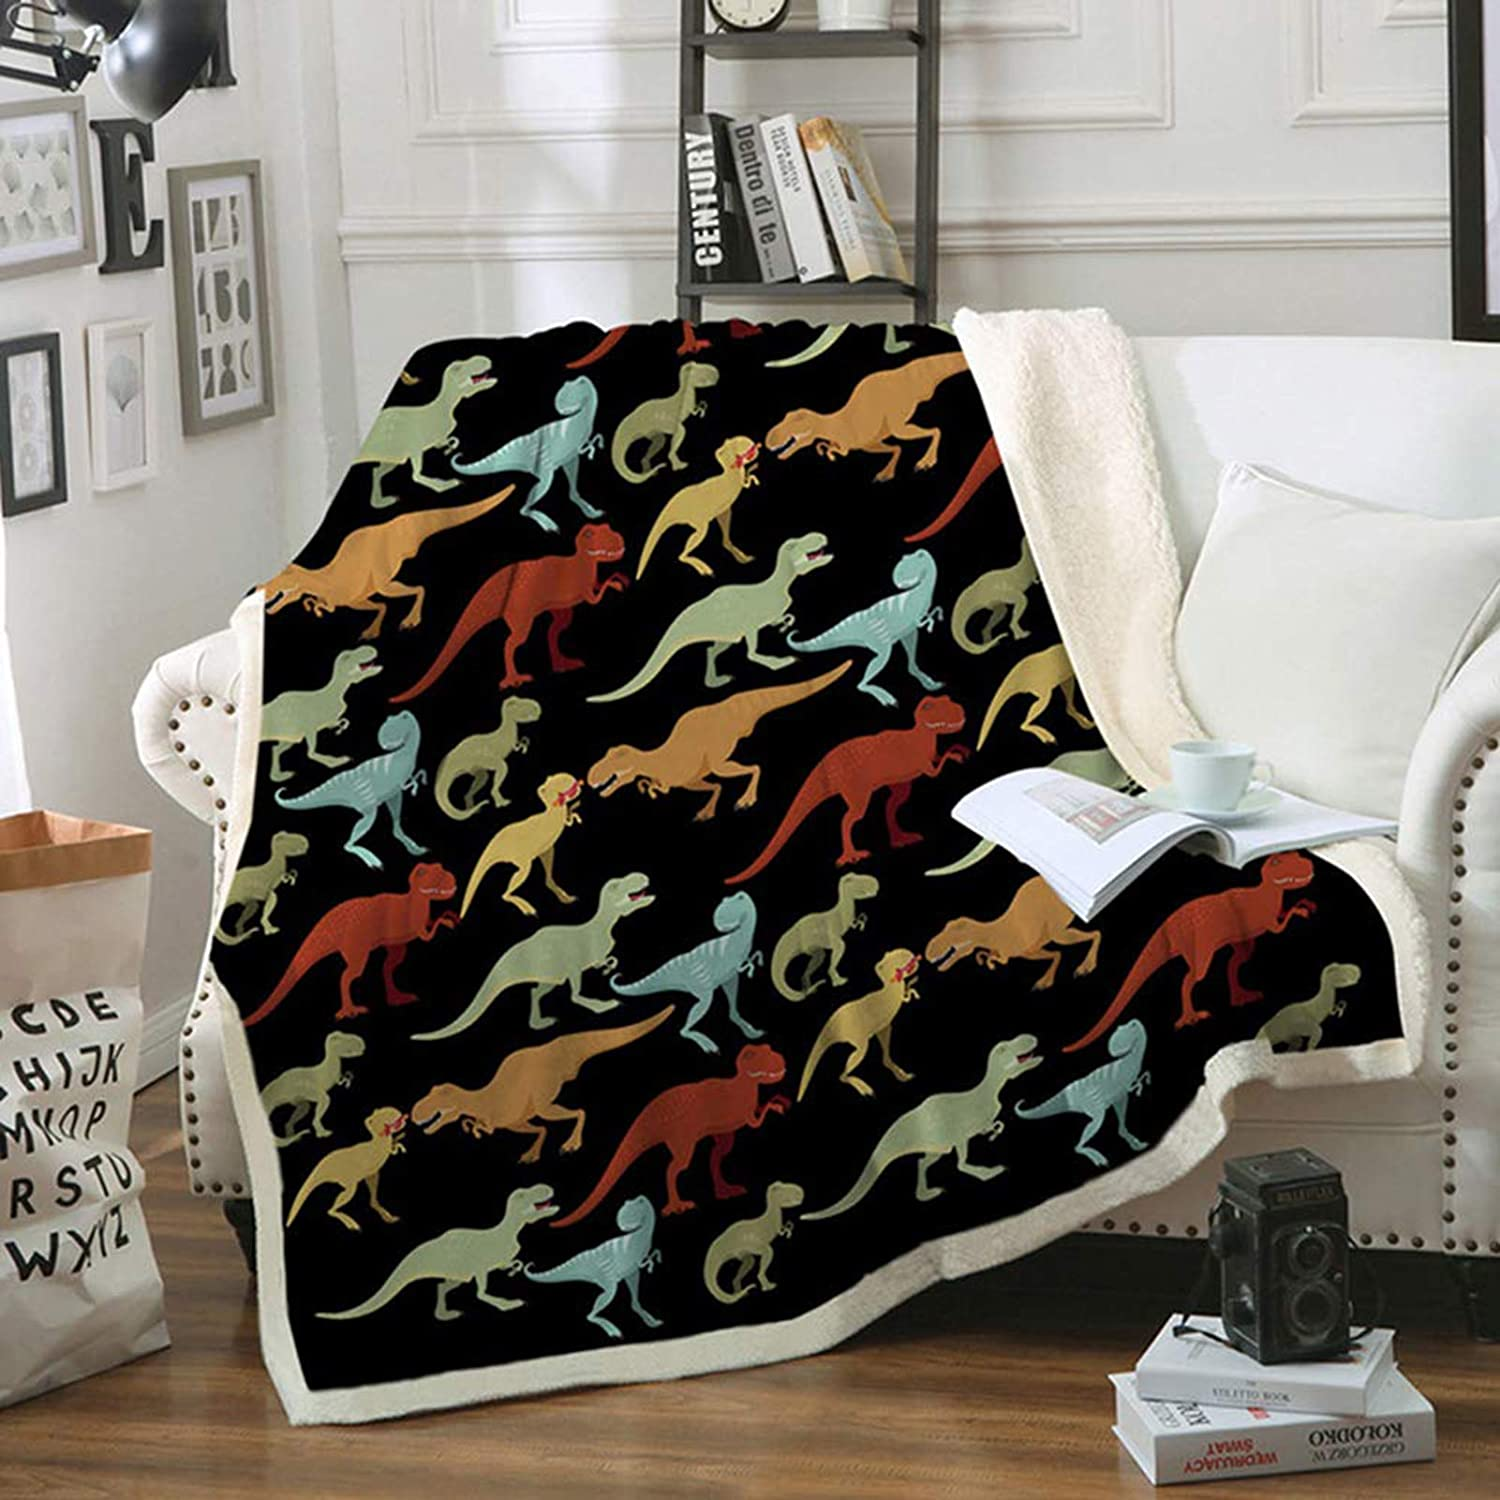 "Dinosaur Kids Throw Blanket Plush Fleece Blanket Boys Jurassic Dinosaur Cartoon Velvet Reversible Soft Blanket for Baby Crib Bed Couch Chair Office Sofa Living Room Decor (Twin Size, 60"" x 80"")"